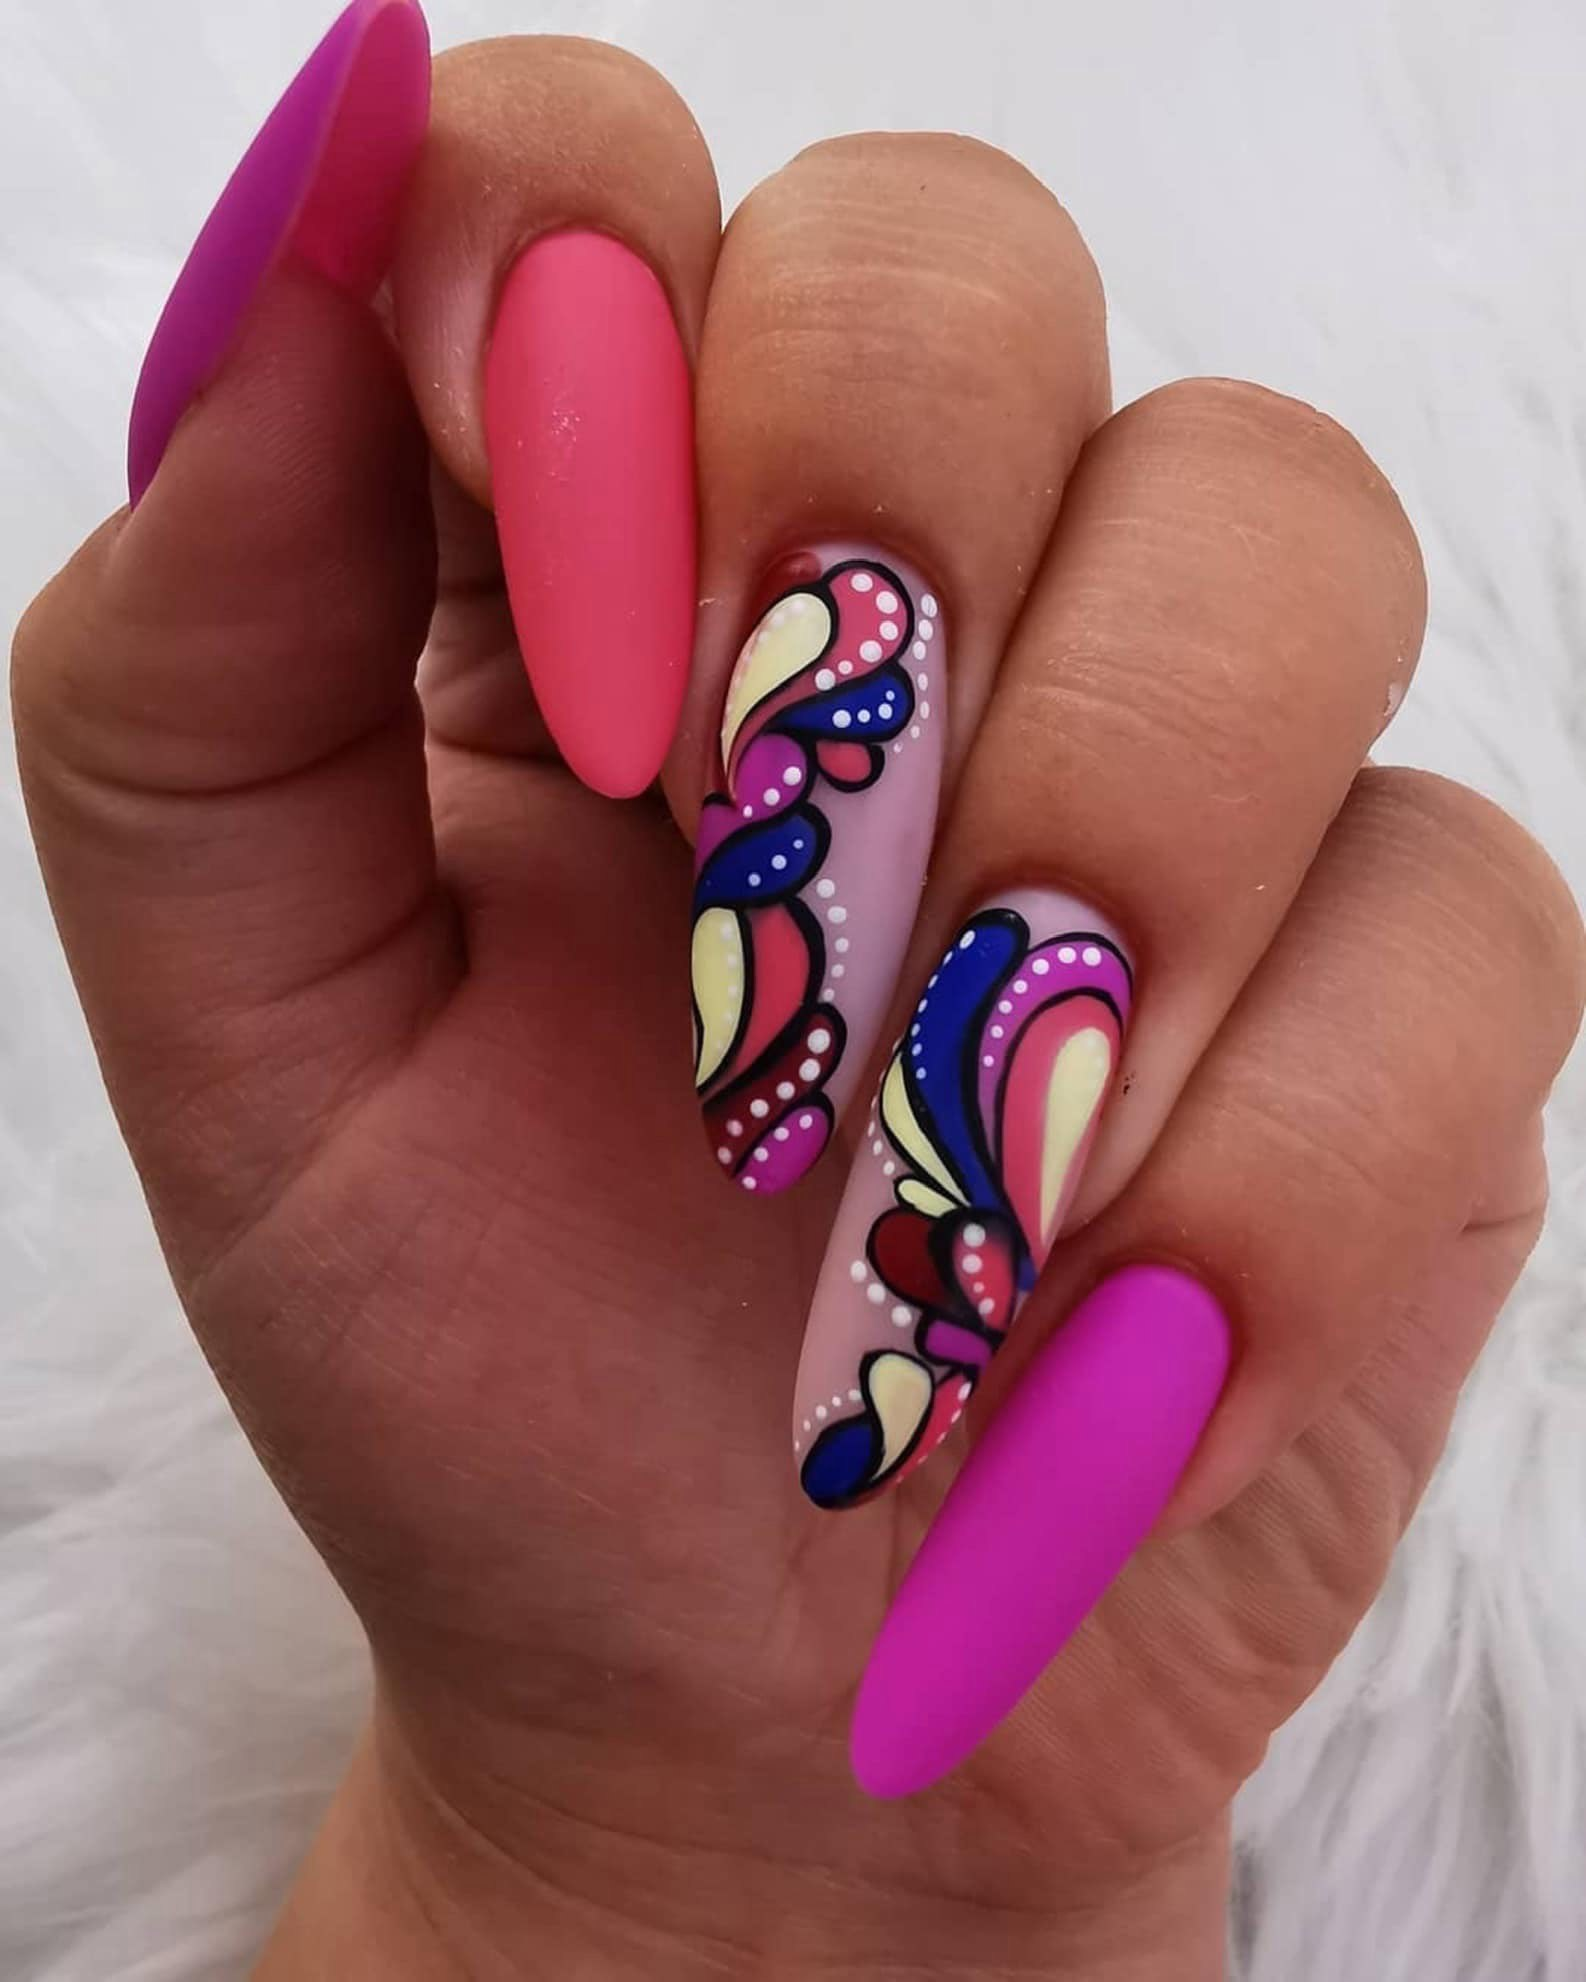 Nail Design (2 fingers)